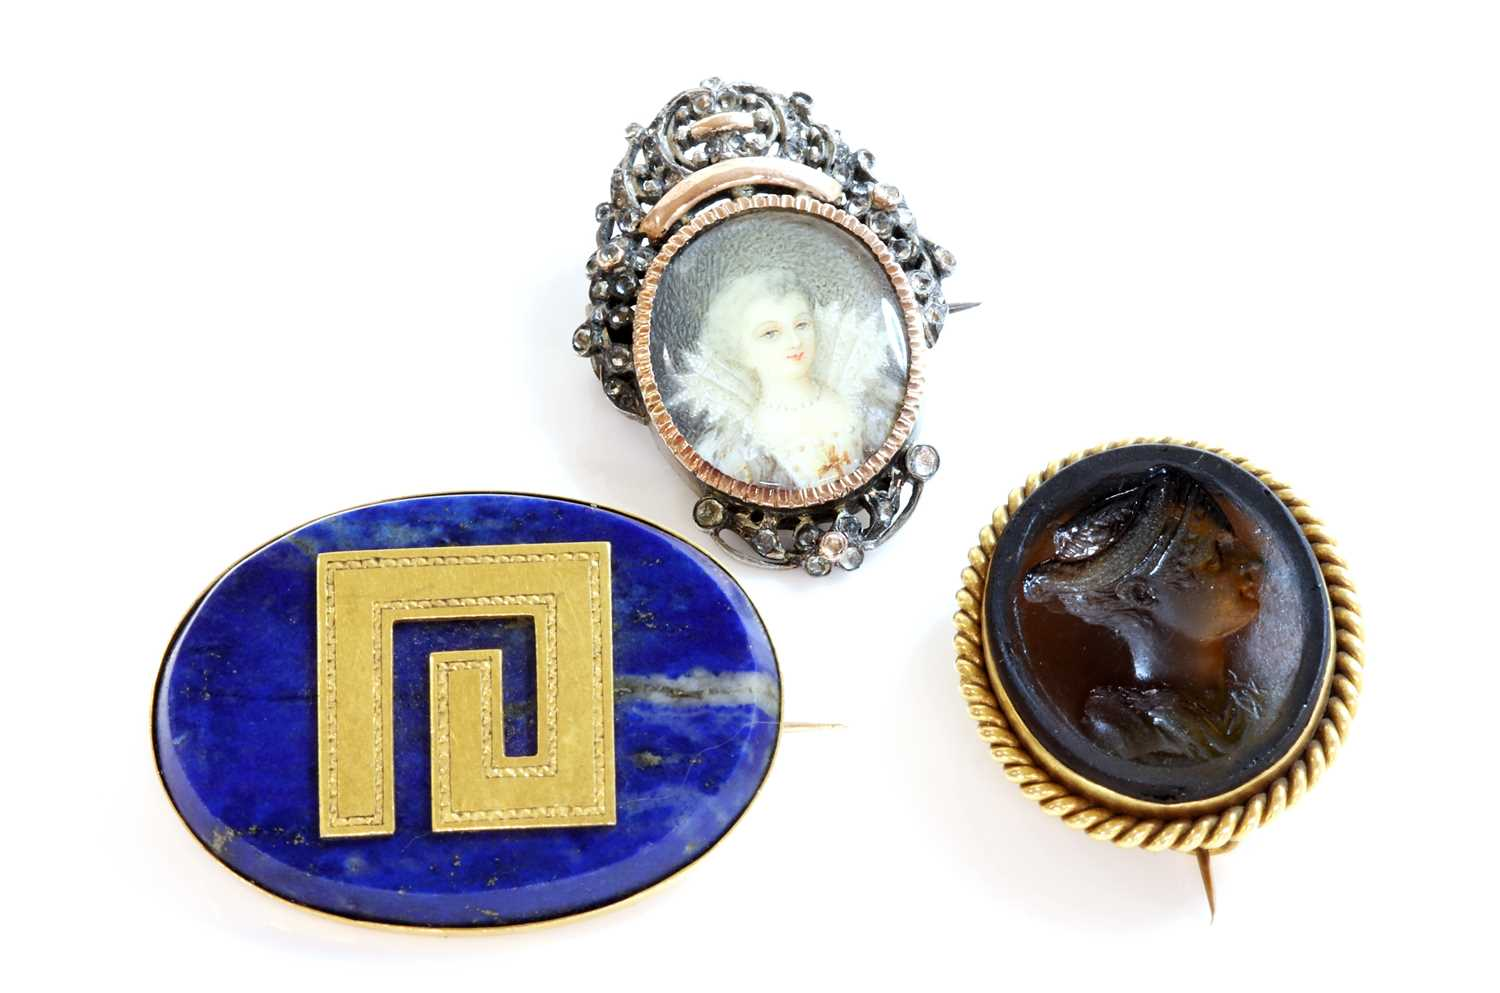 A late Victorian gold mounted Tassie intaglio brooch, by Benzie of Cowes, - Image 2 of 2